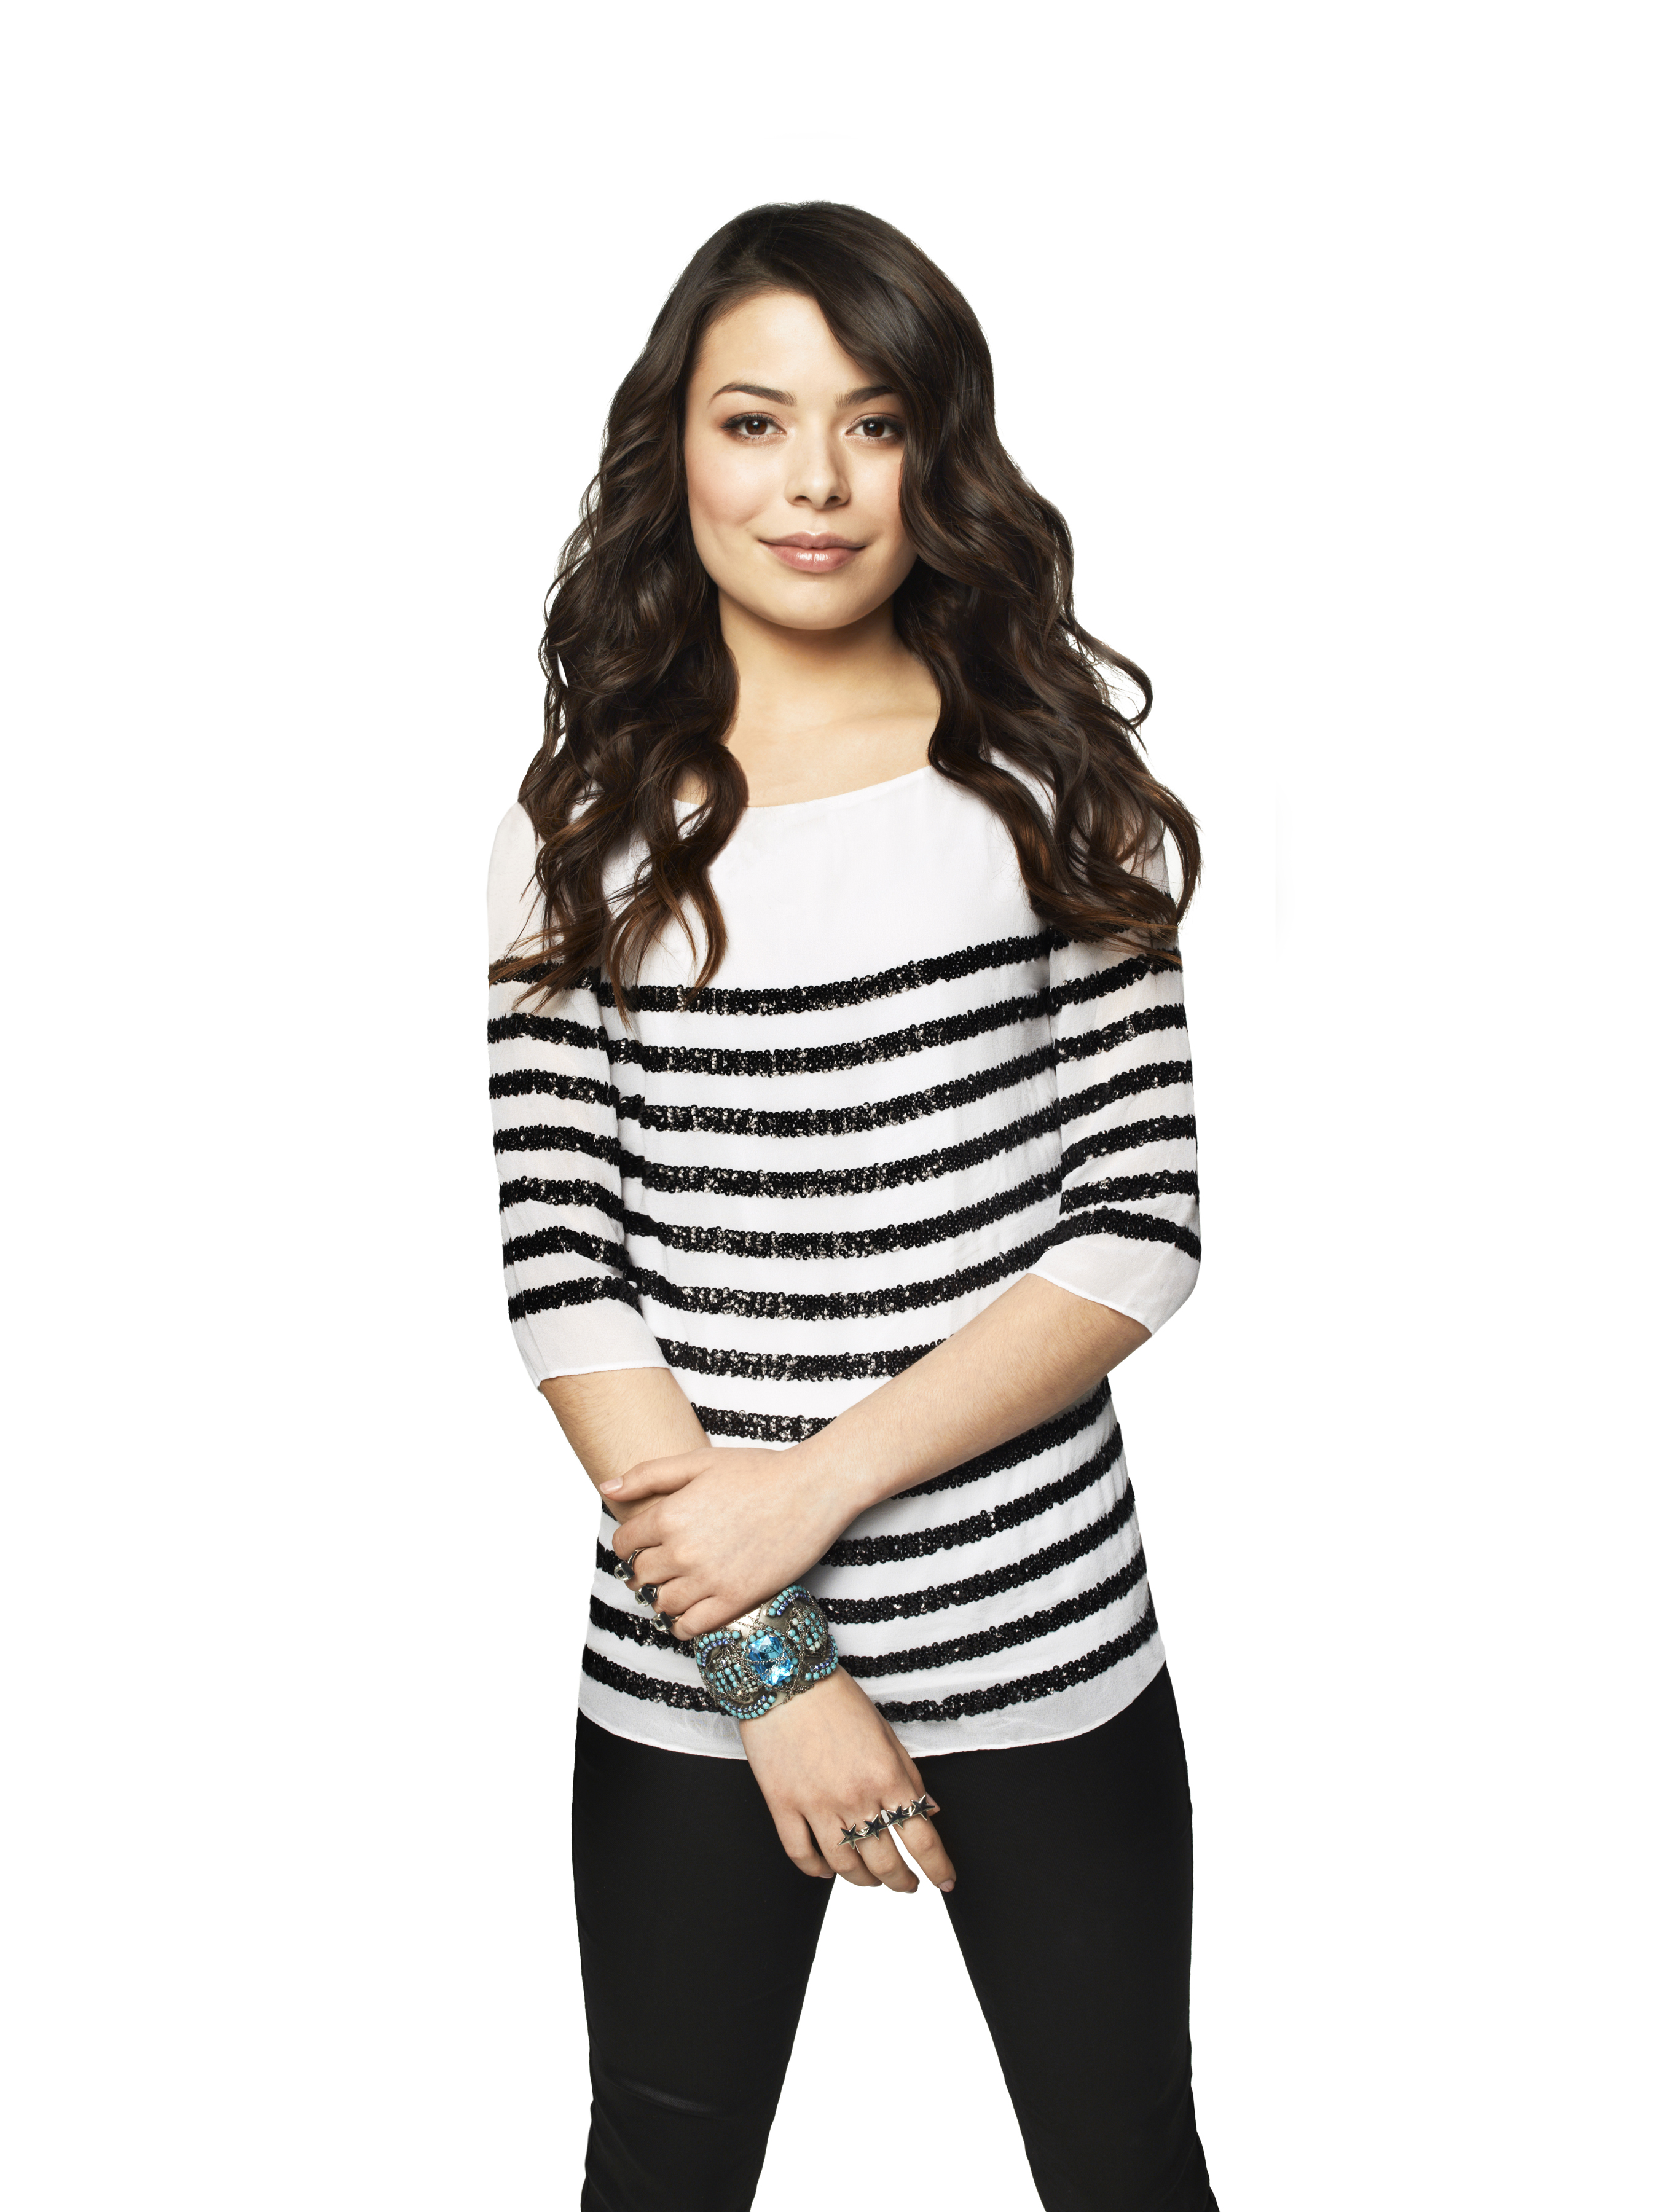 Icarly carly